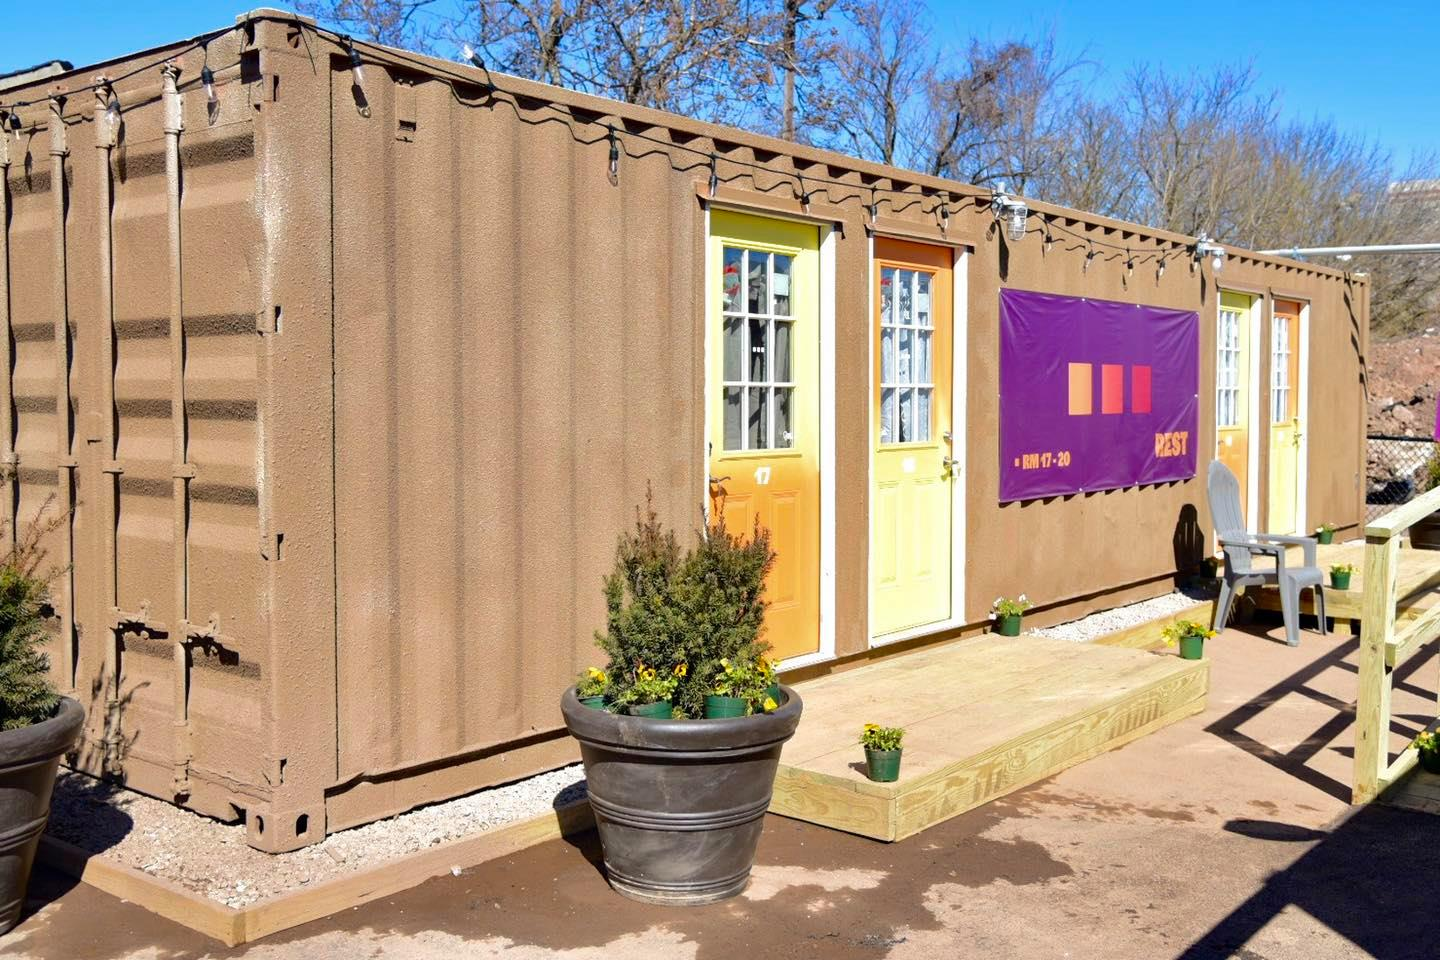 Newark converts containers into housing 'village' for the homeless